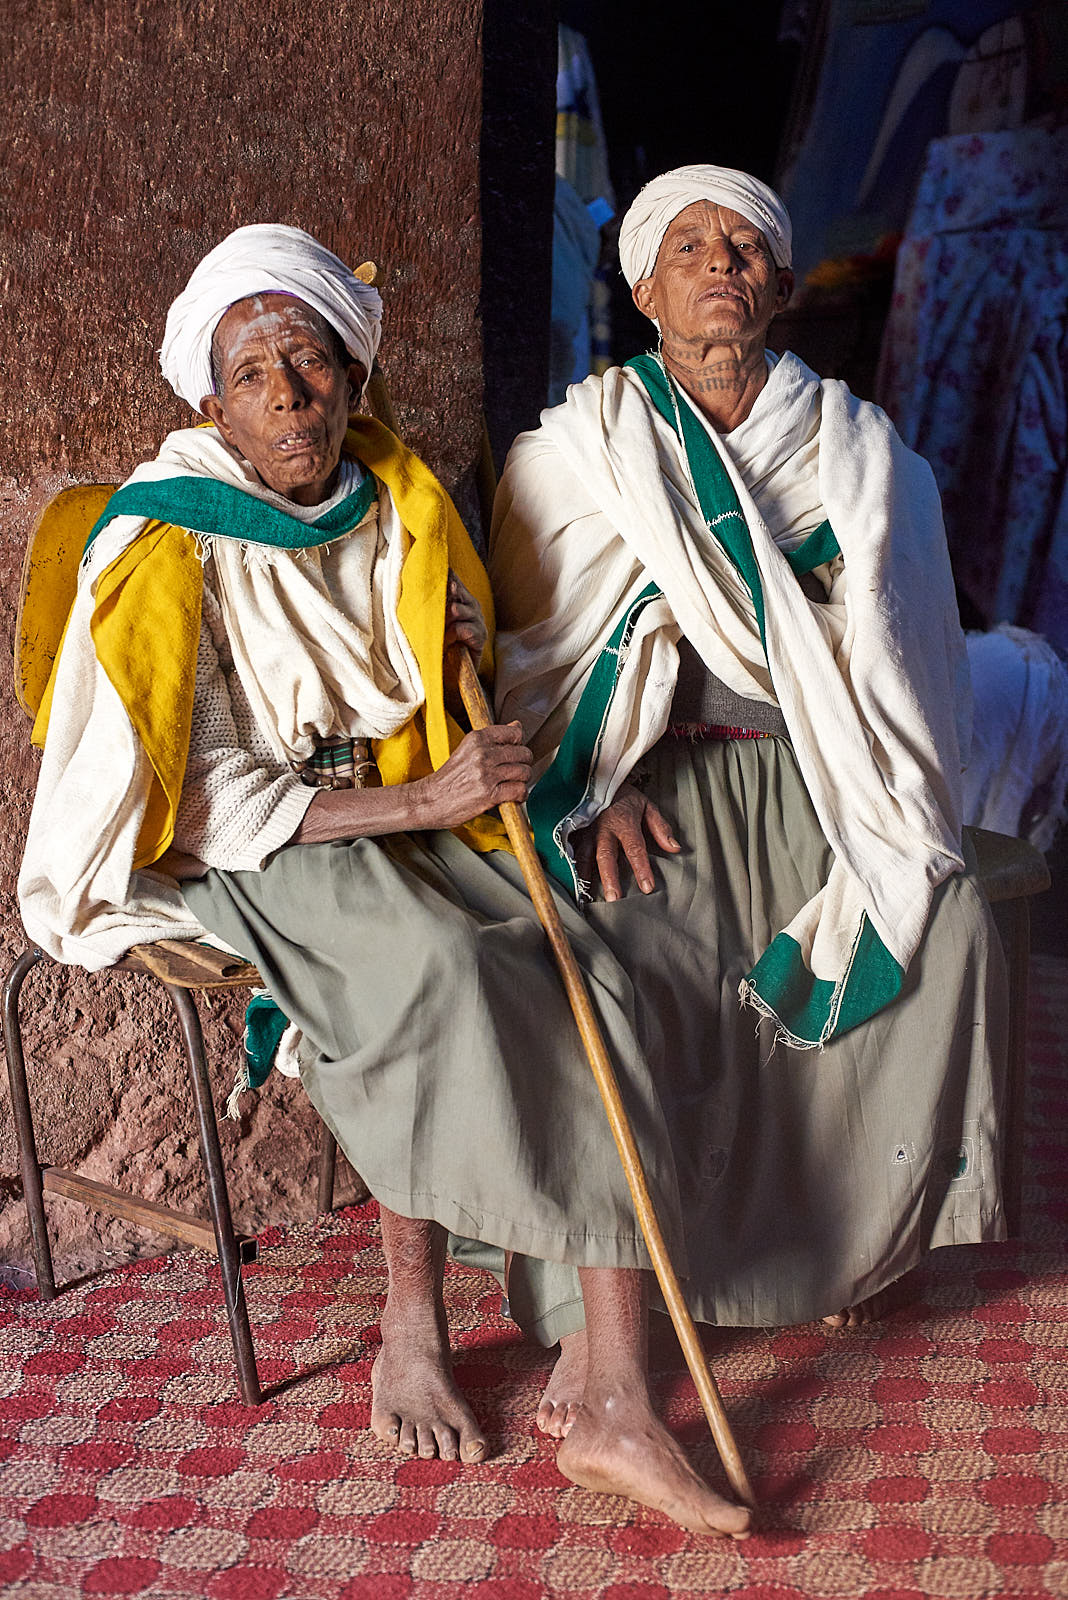 An Ethiopian Orthodox priest and pilgrim rest together after praying inside the Church of Saint George, Lalibela, Ethiopia.